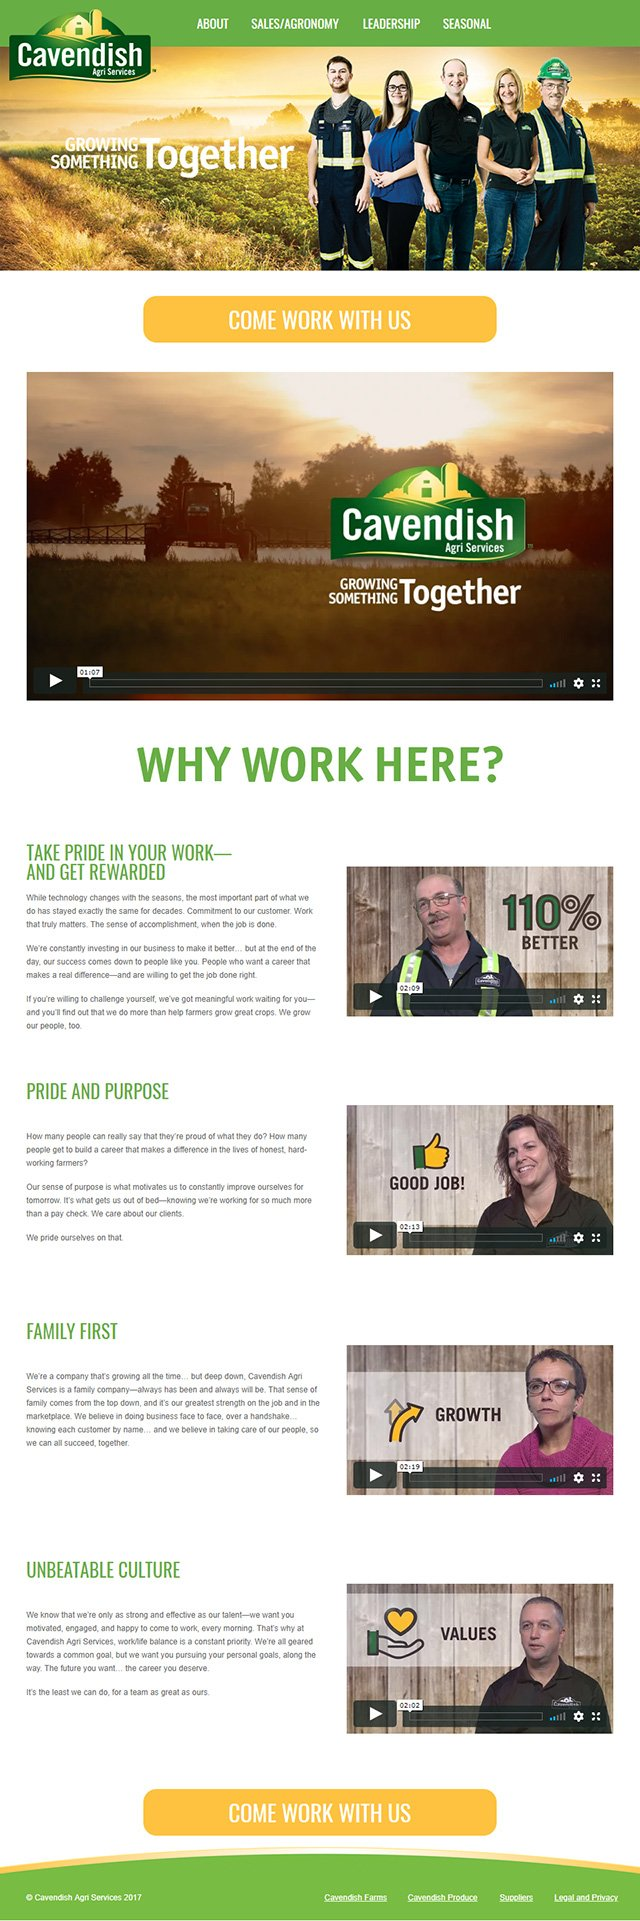 Cavendish Agri Services Employer Brand Services Webpage